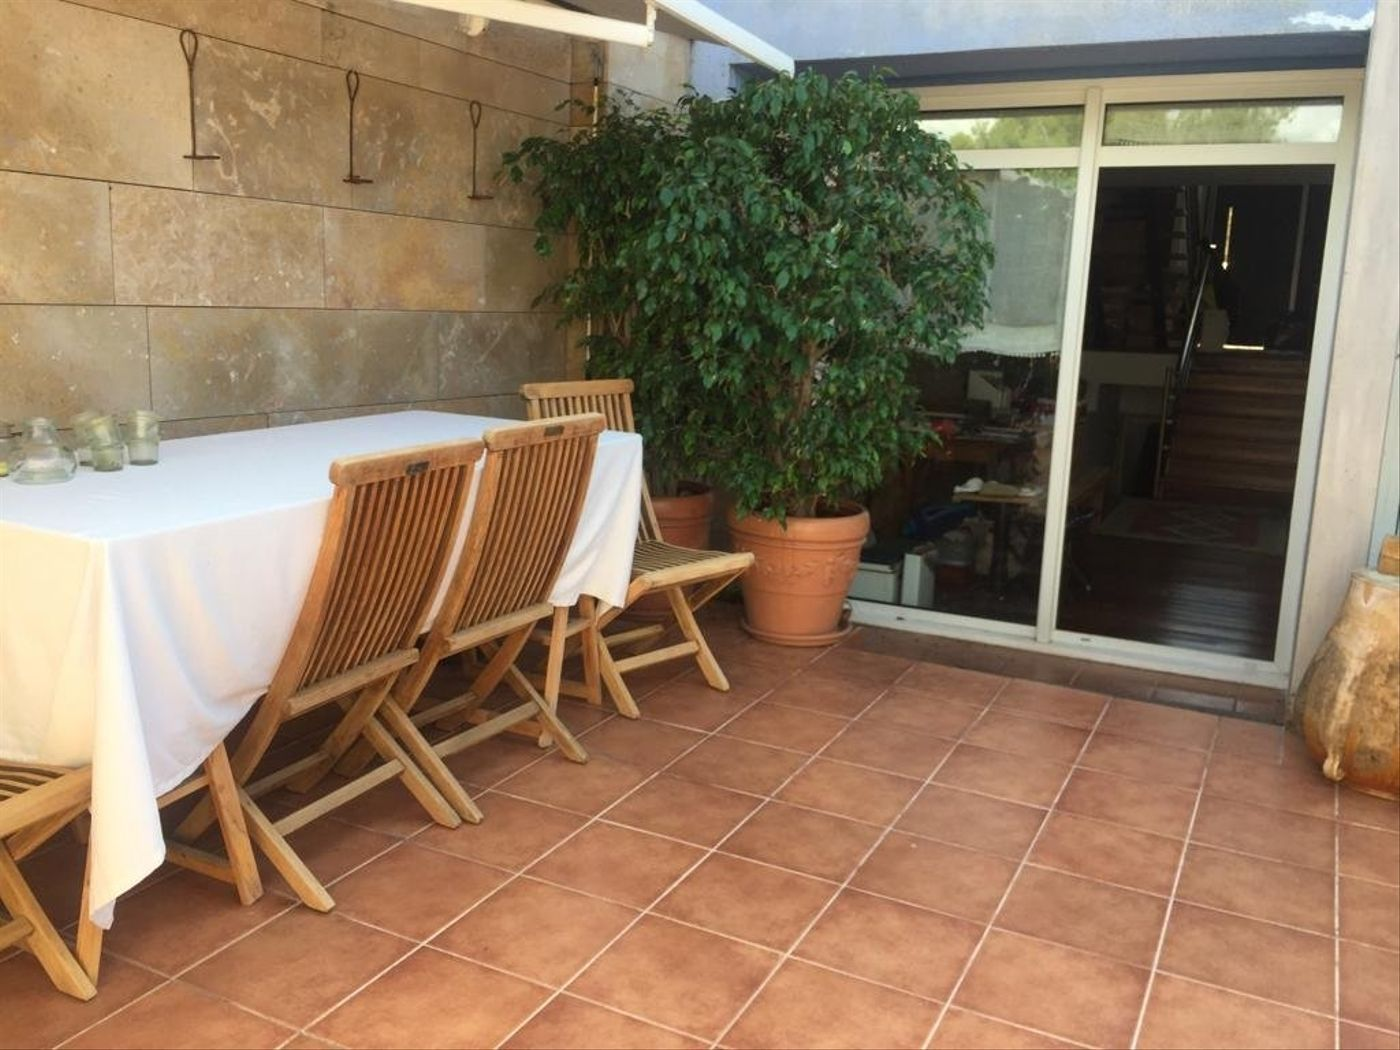 Rent House in Major de monnars,. Preciosa casa en solimar de 260m2